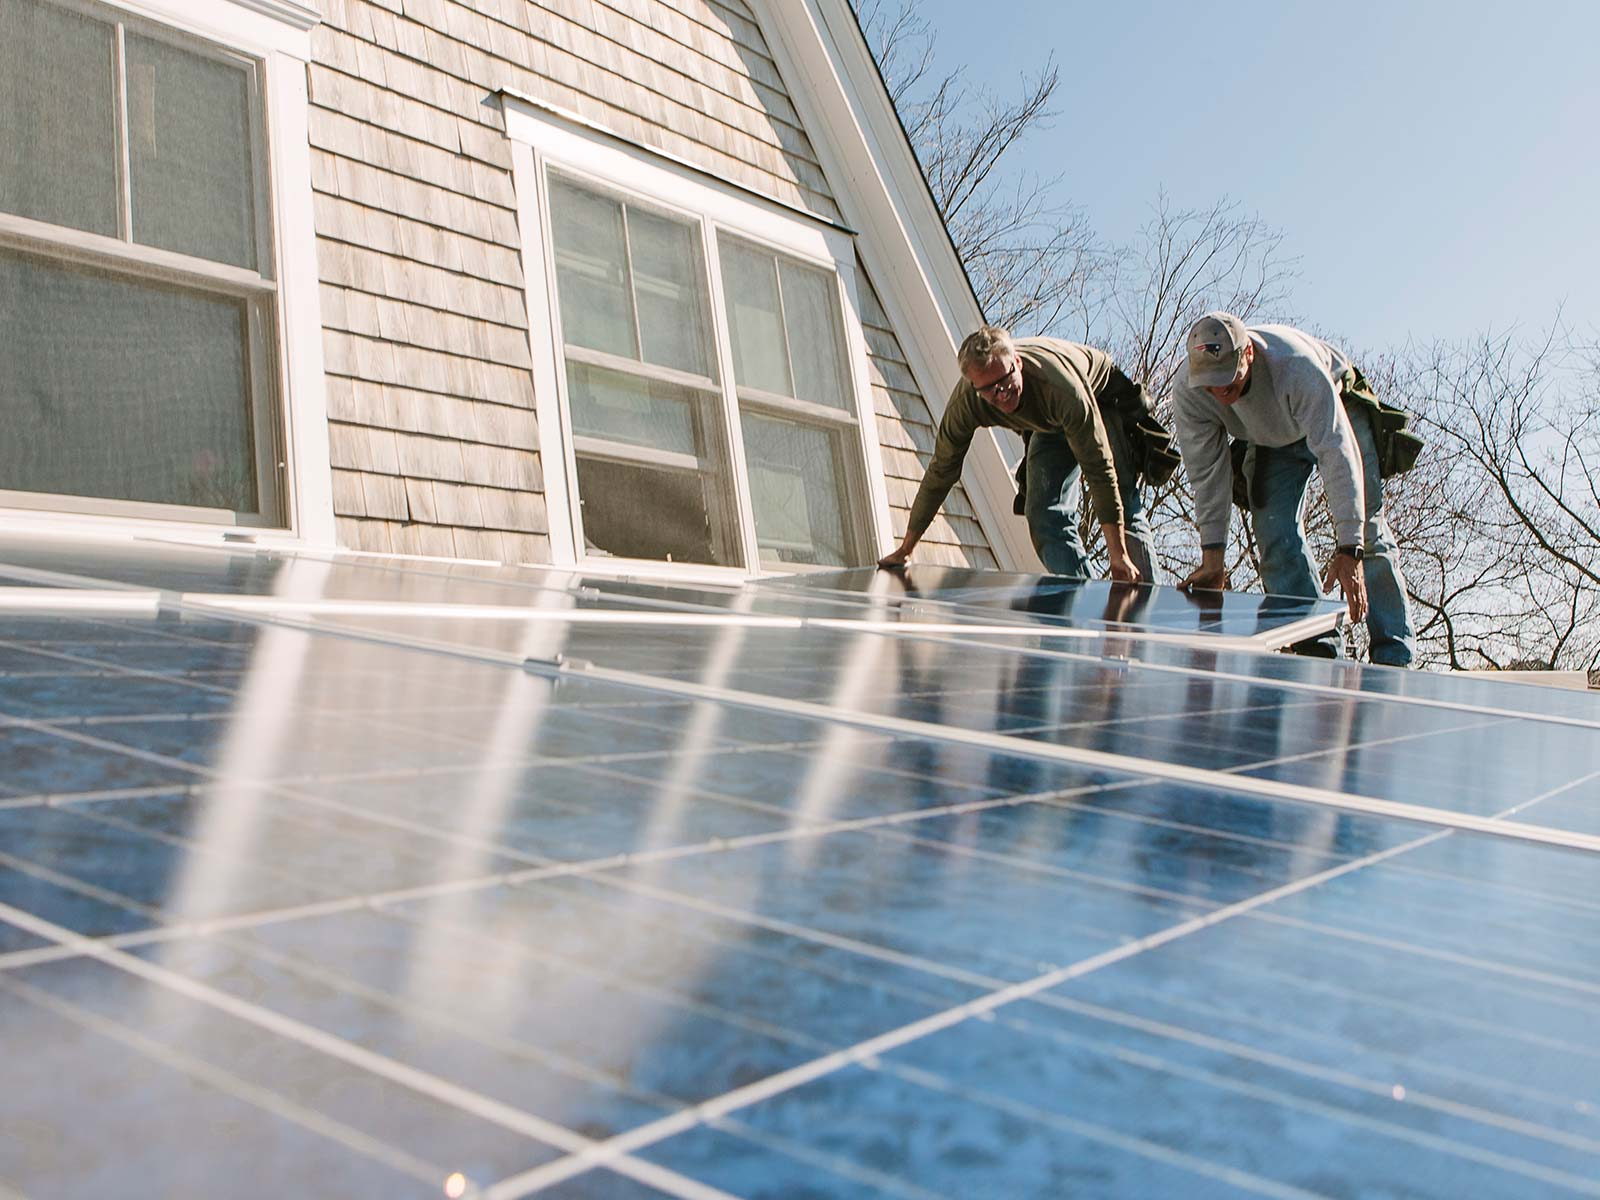 Two workers install solar panels on the roof of a suburban home